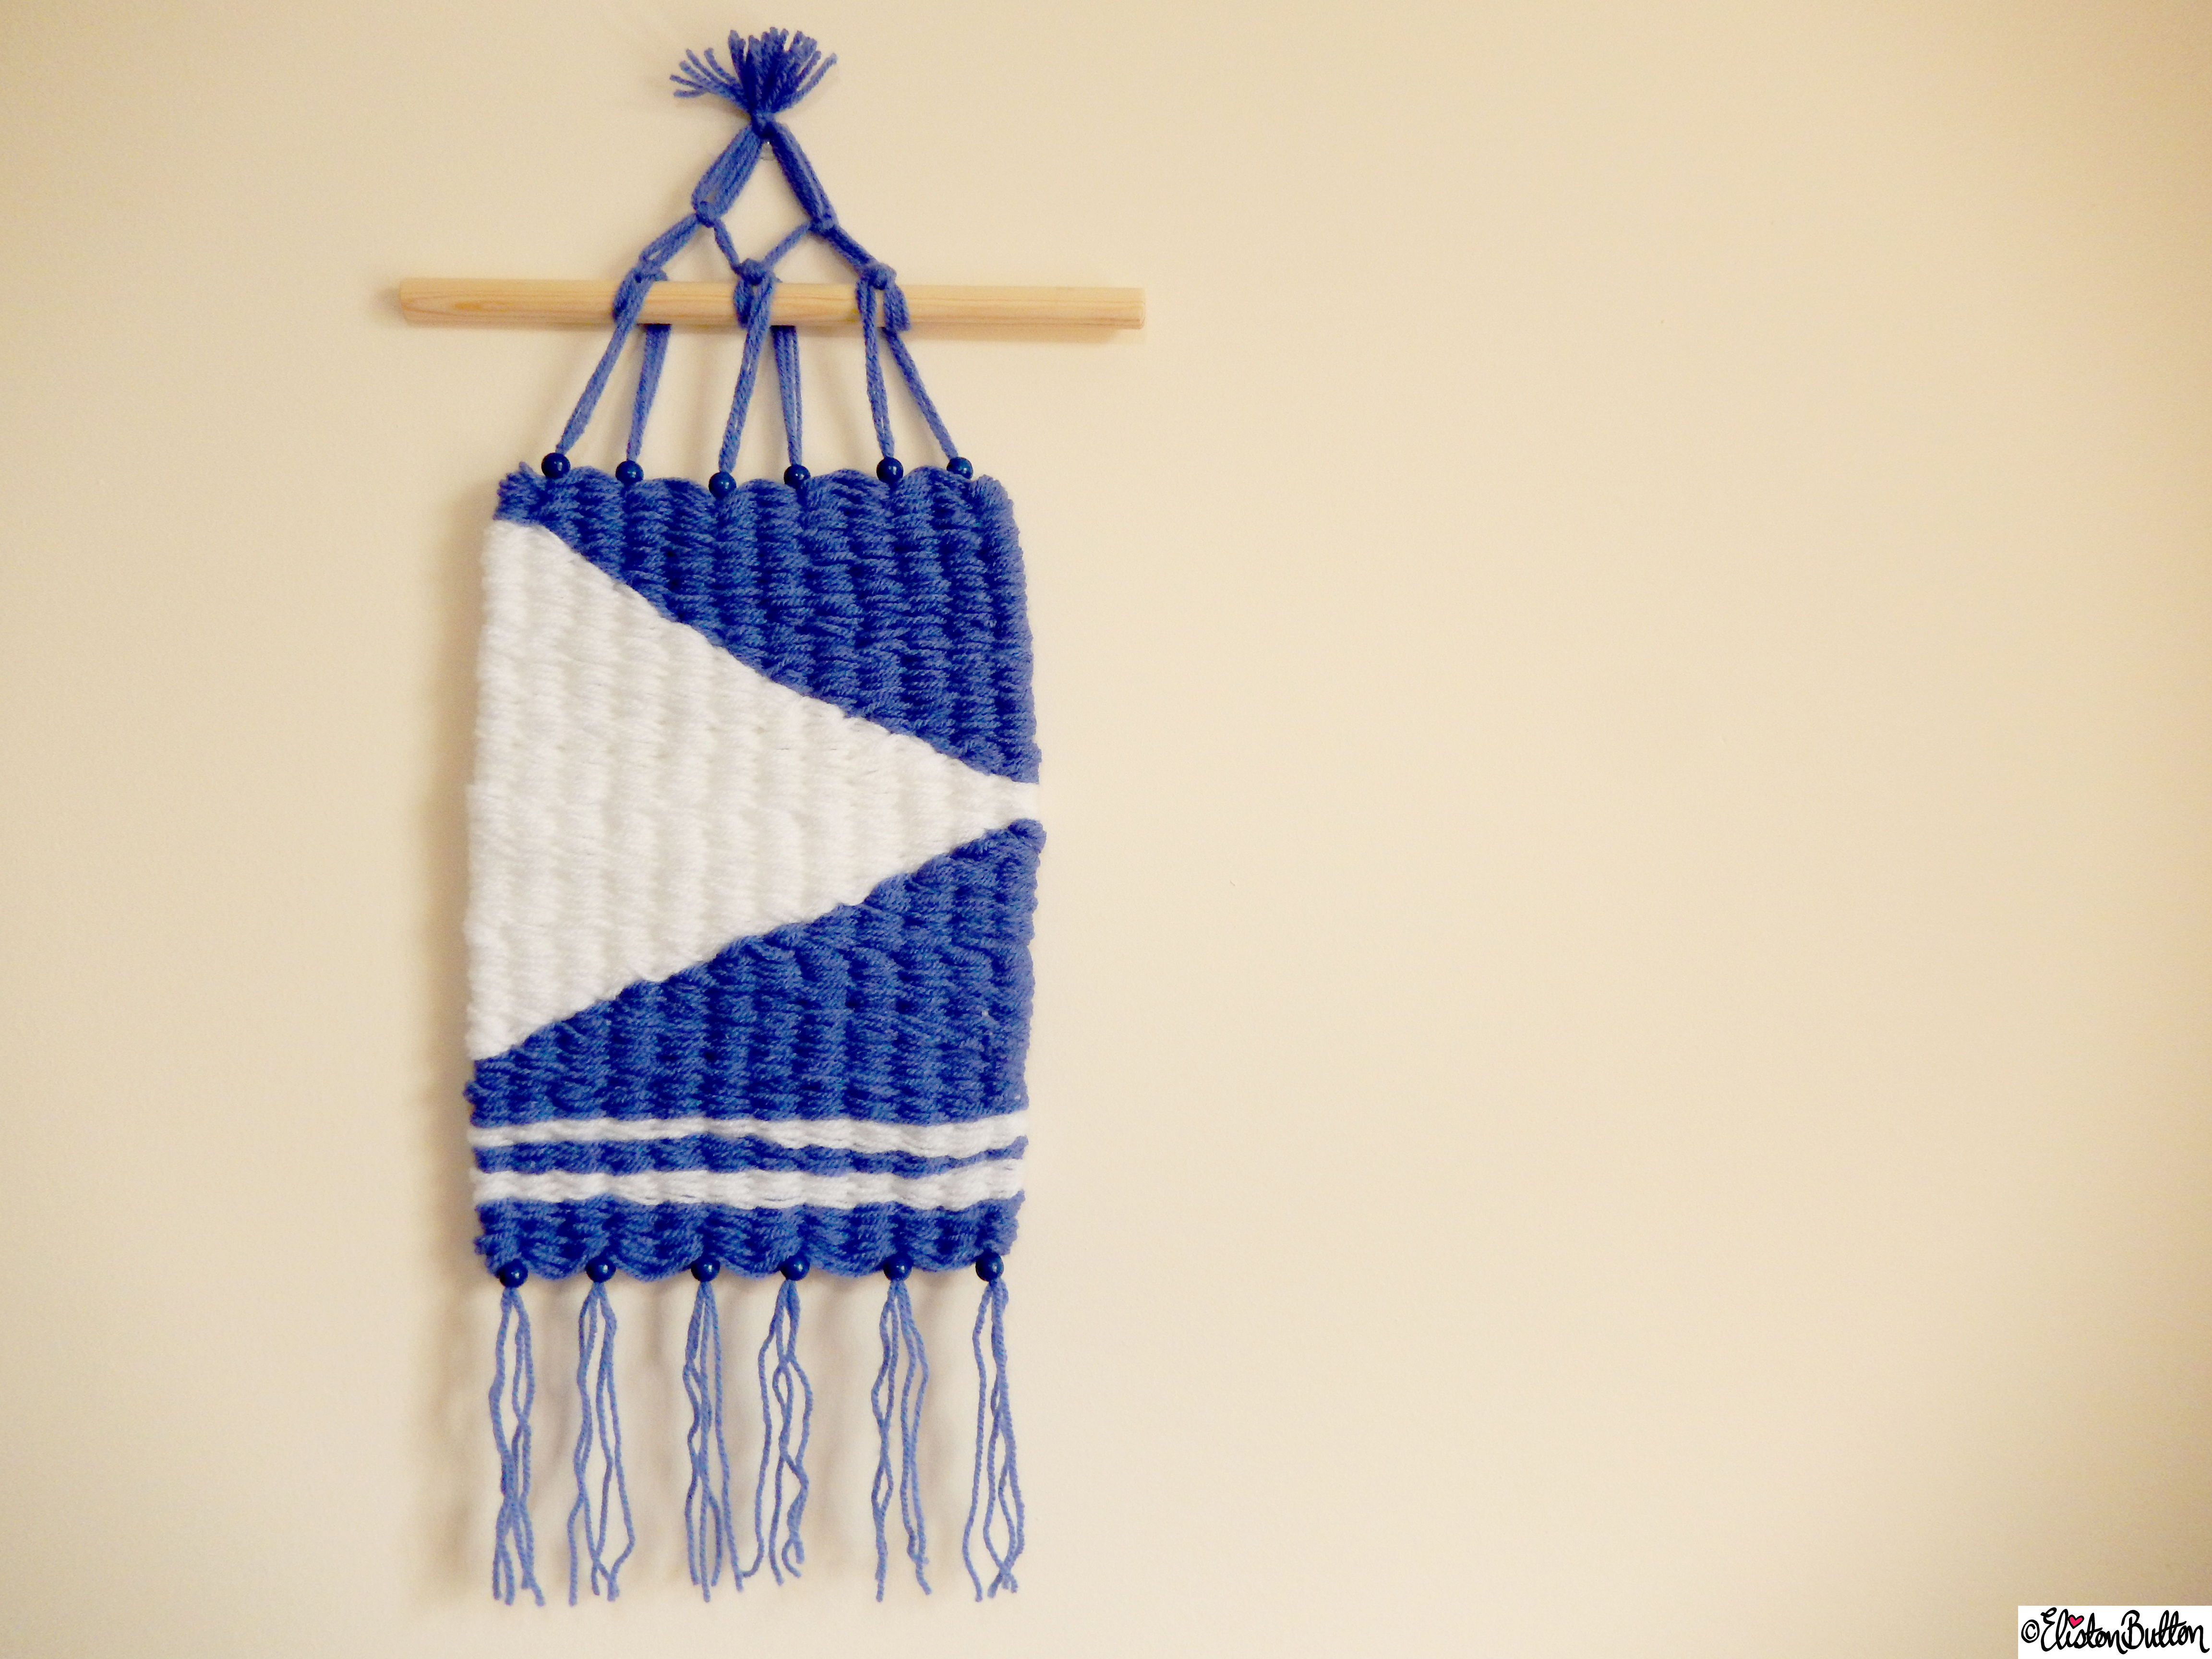 Nautical Inspired Blue and White Woven Wall Hanging - Create 28 - No. 7&8 - Woven Wall Hangings at www.elistonbutton.com - Eliston Button - That Crafty Kid – Art, Design, Craft & Adventure.